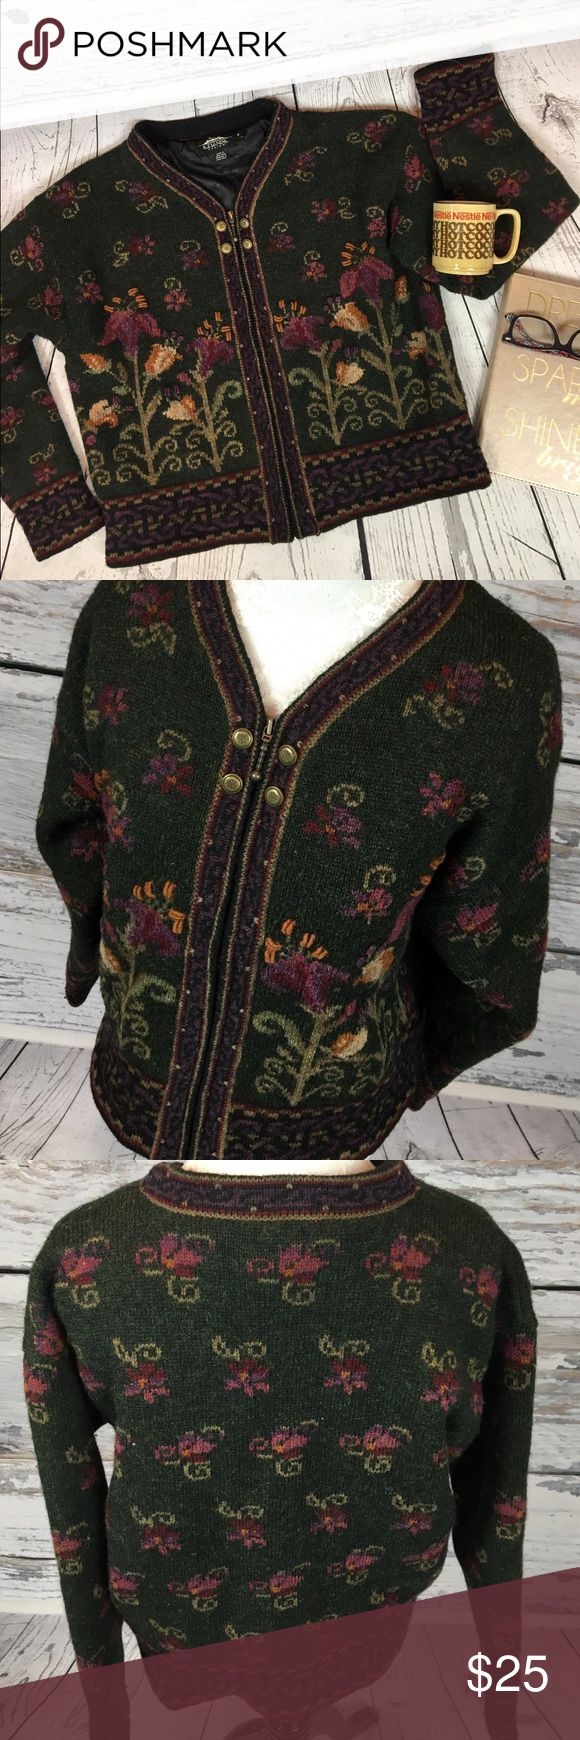 """🆕 Vintage Icelandic WOOL Sweater Jacket Women's M This make me want to cuddle up with a good book!!! GORGEOUS Vintage Lined Zip Up Sweater WOOL Jacket by Icelandic Design. Made in Hong Kong. Size Medium deep green background with Floral design. This is a beautiful gem and one of a kind!! In lovely condition only minor wool piling. from a smoke free home!! Toasty warm!!  Measurements (flat): Armpit to armpit: 21.5"""" Armpit to cuff: 20"""" Shoulder to bottom: 21.5"""" Across bottom: 20.5"""" Vintage…"""